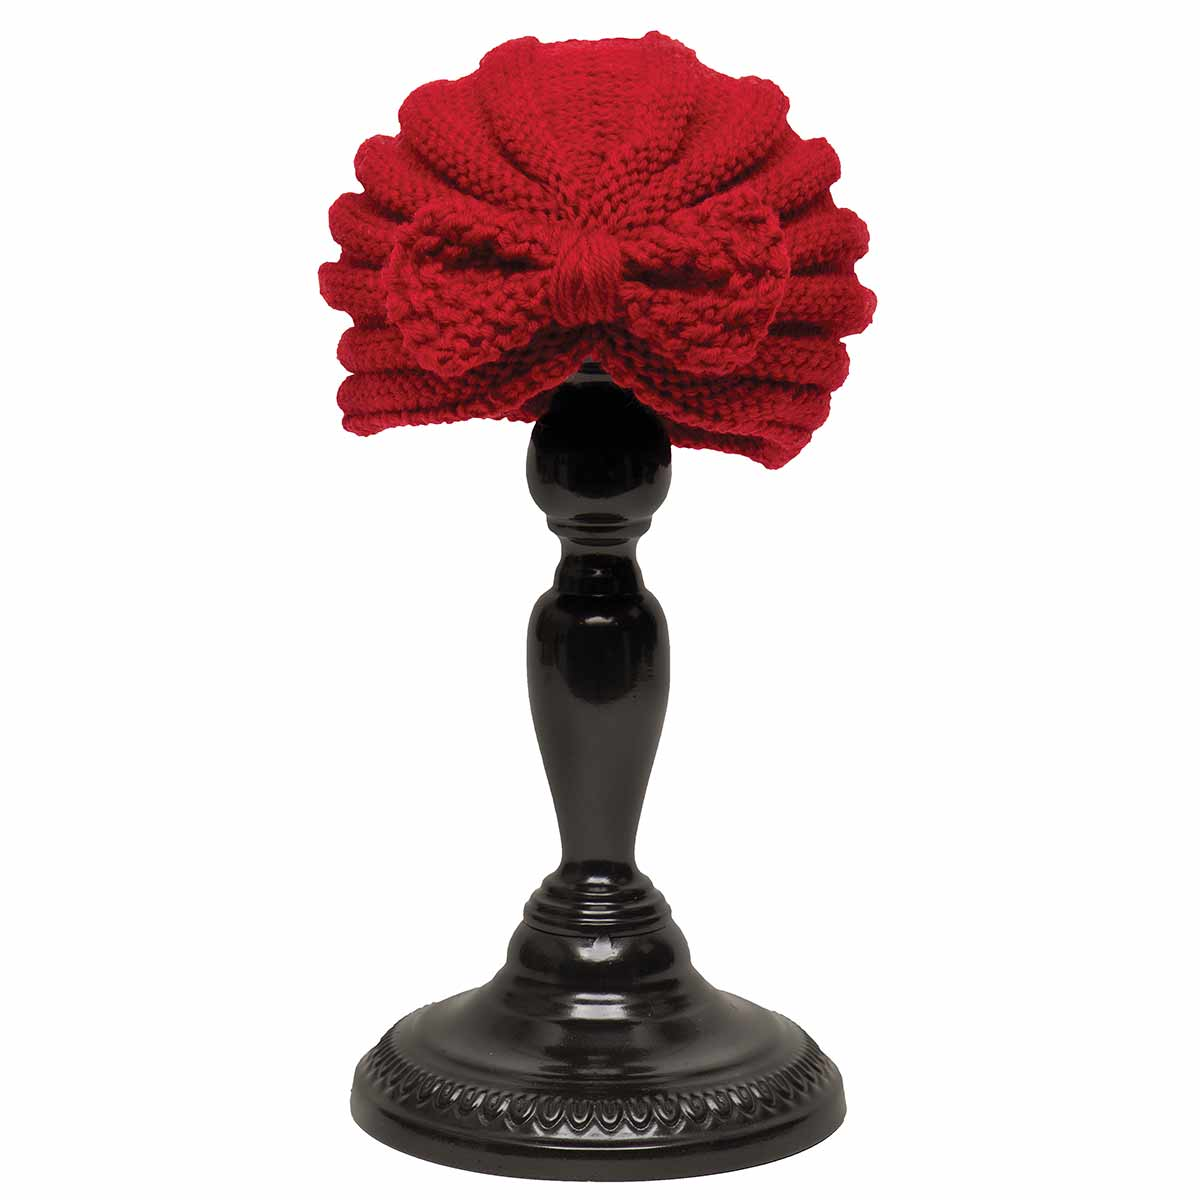 Red Knit Cloche Hat with Bow